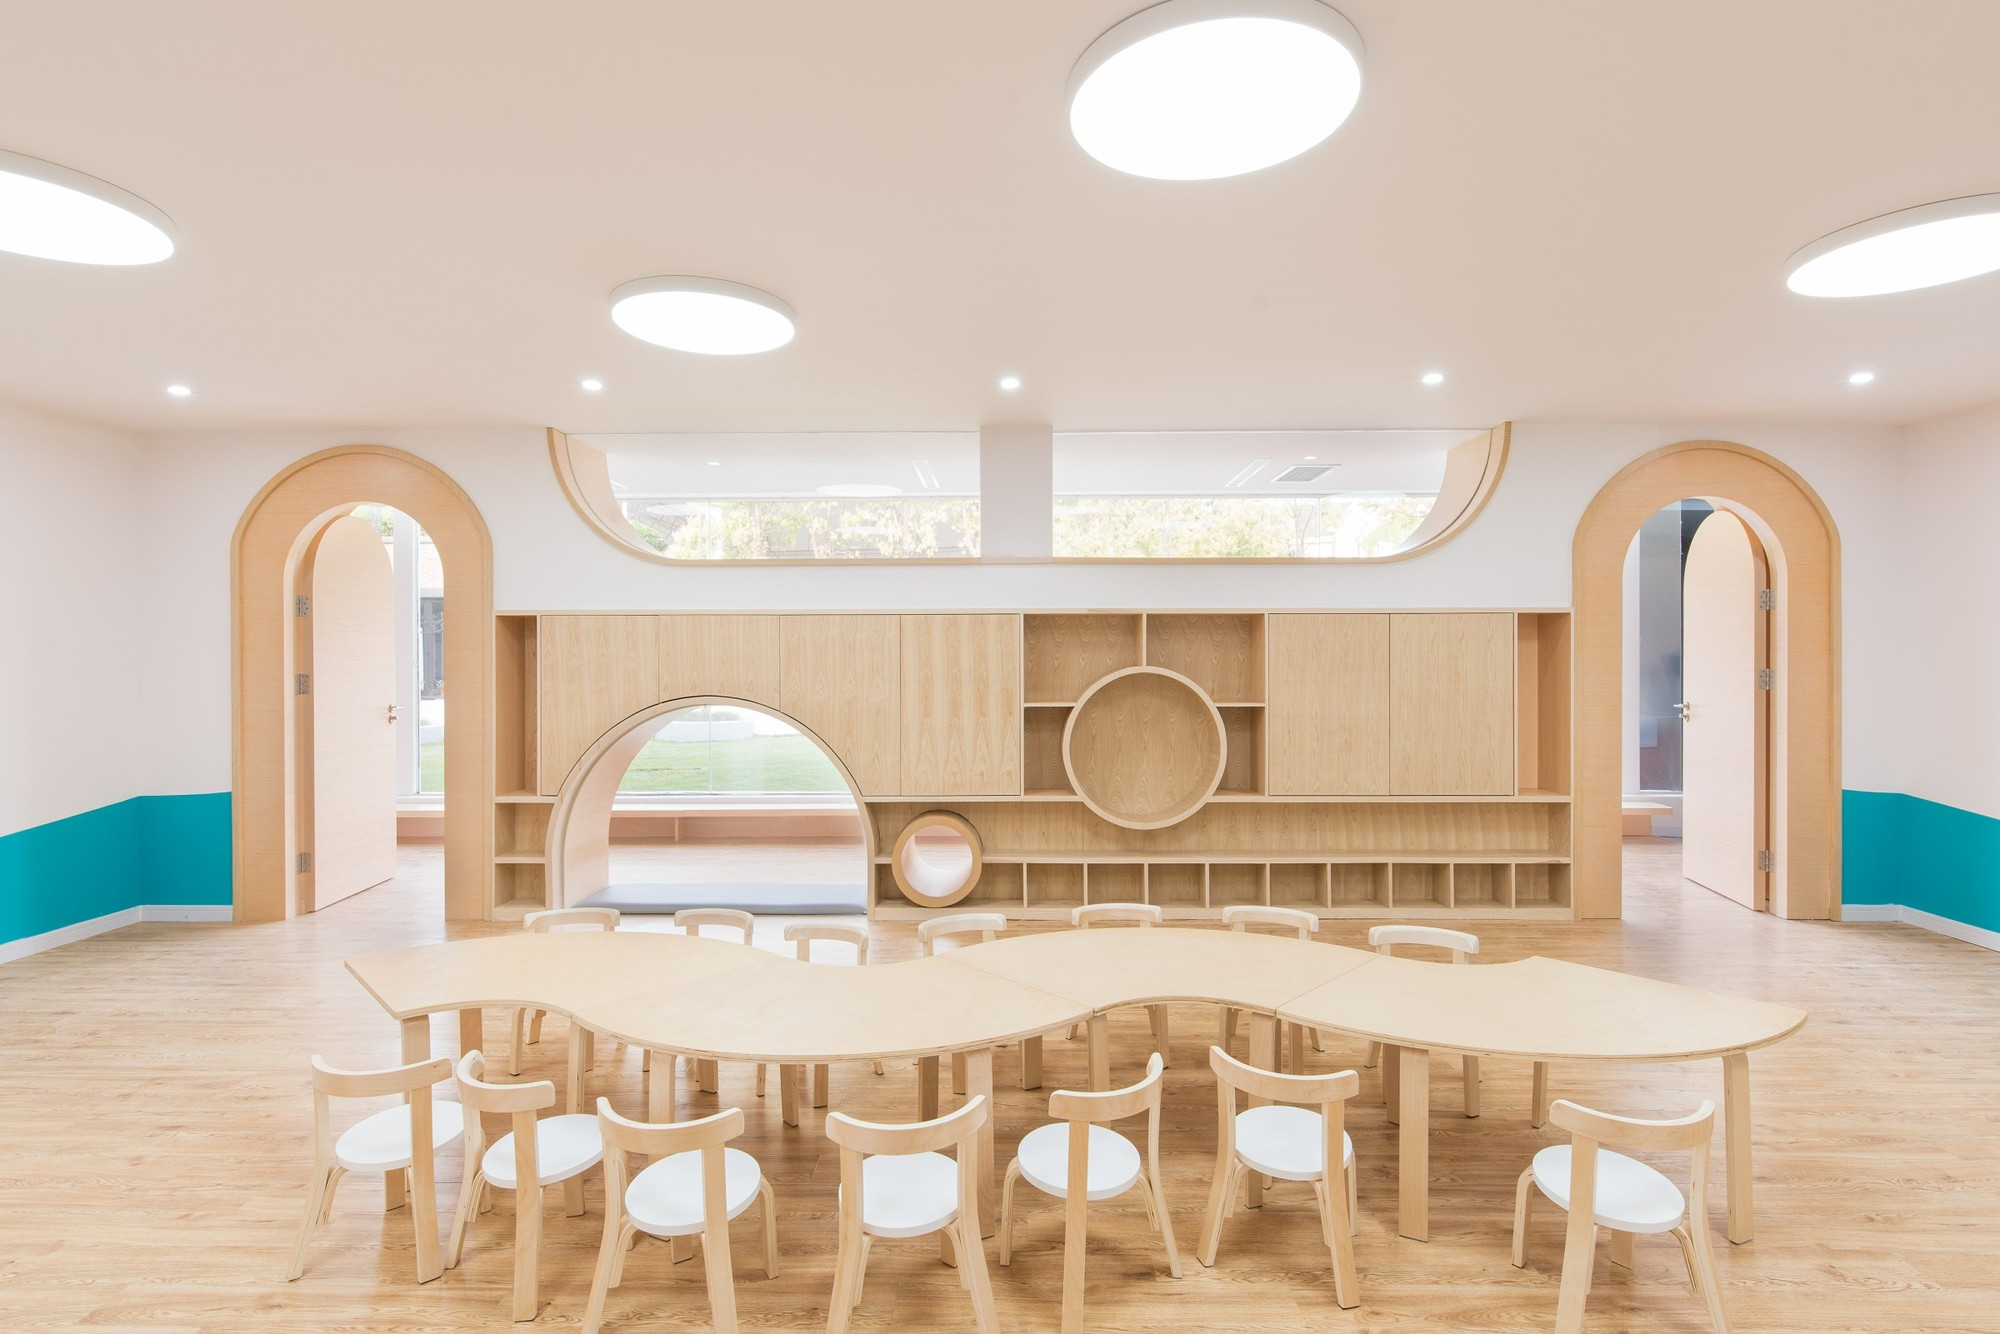 Early Education Center Near The Horse Farm L M Design Lab Archdaily